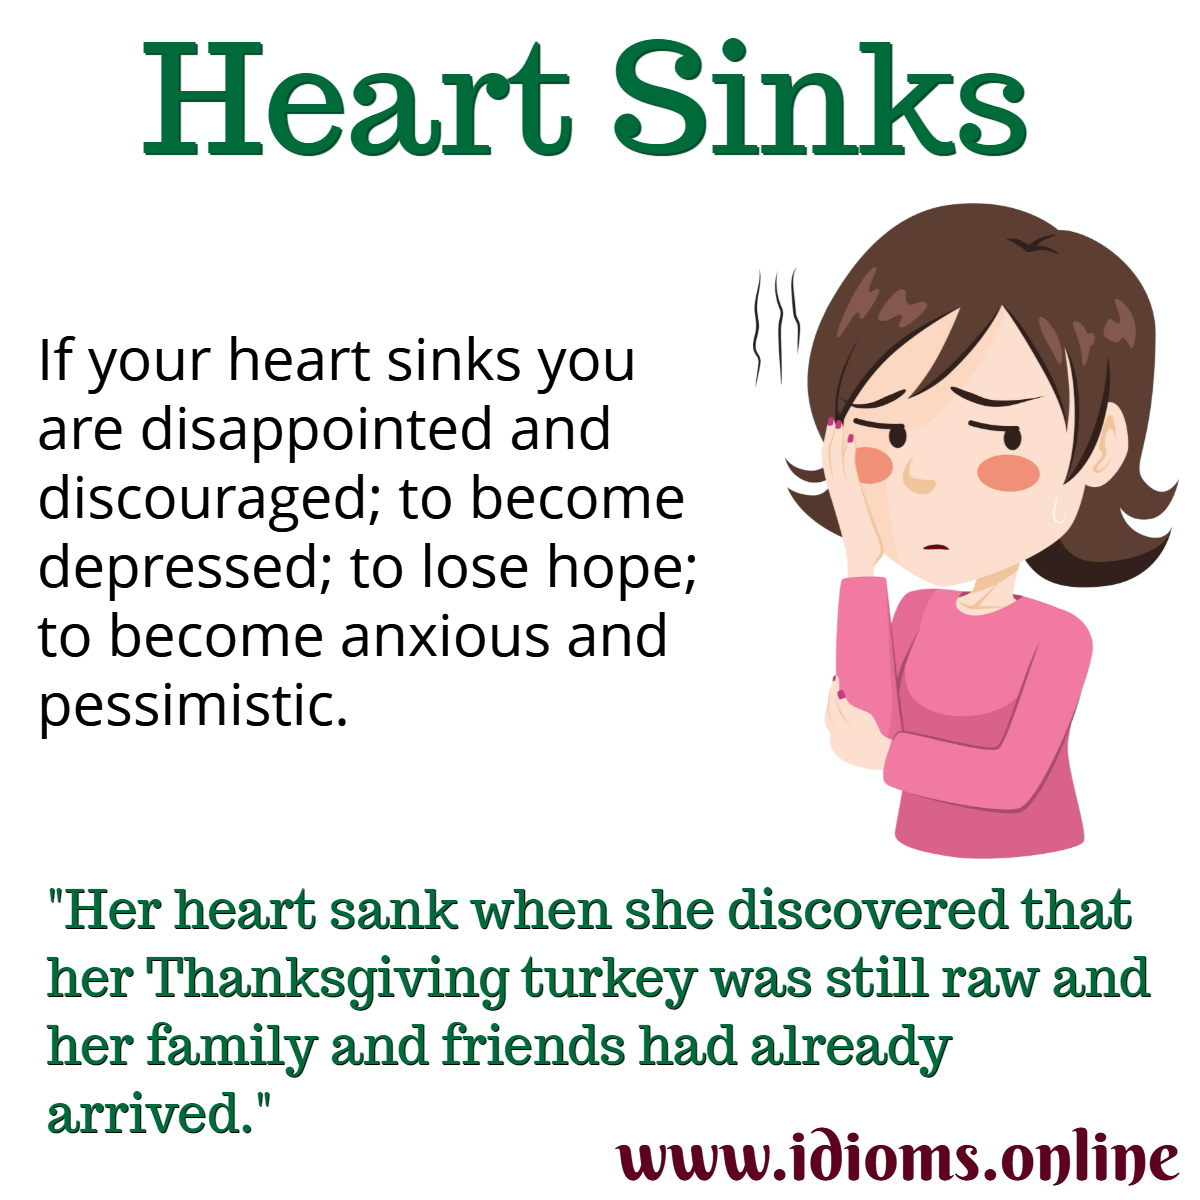 my heart sank one's heart sinks idiom meaning